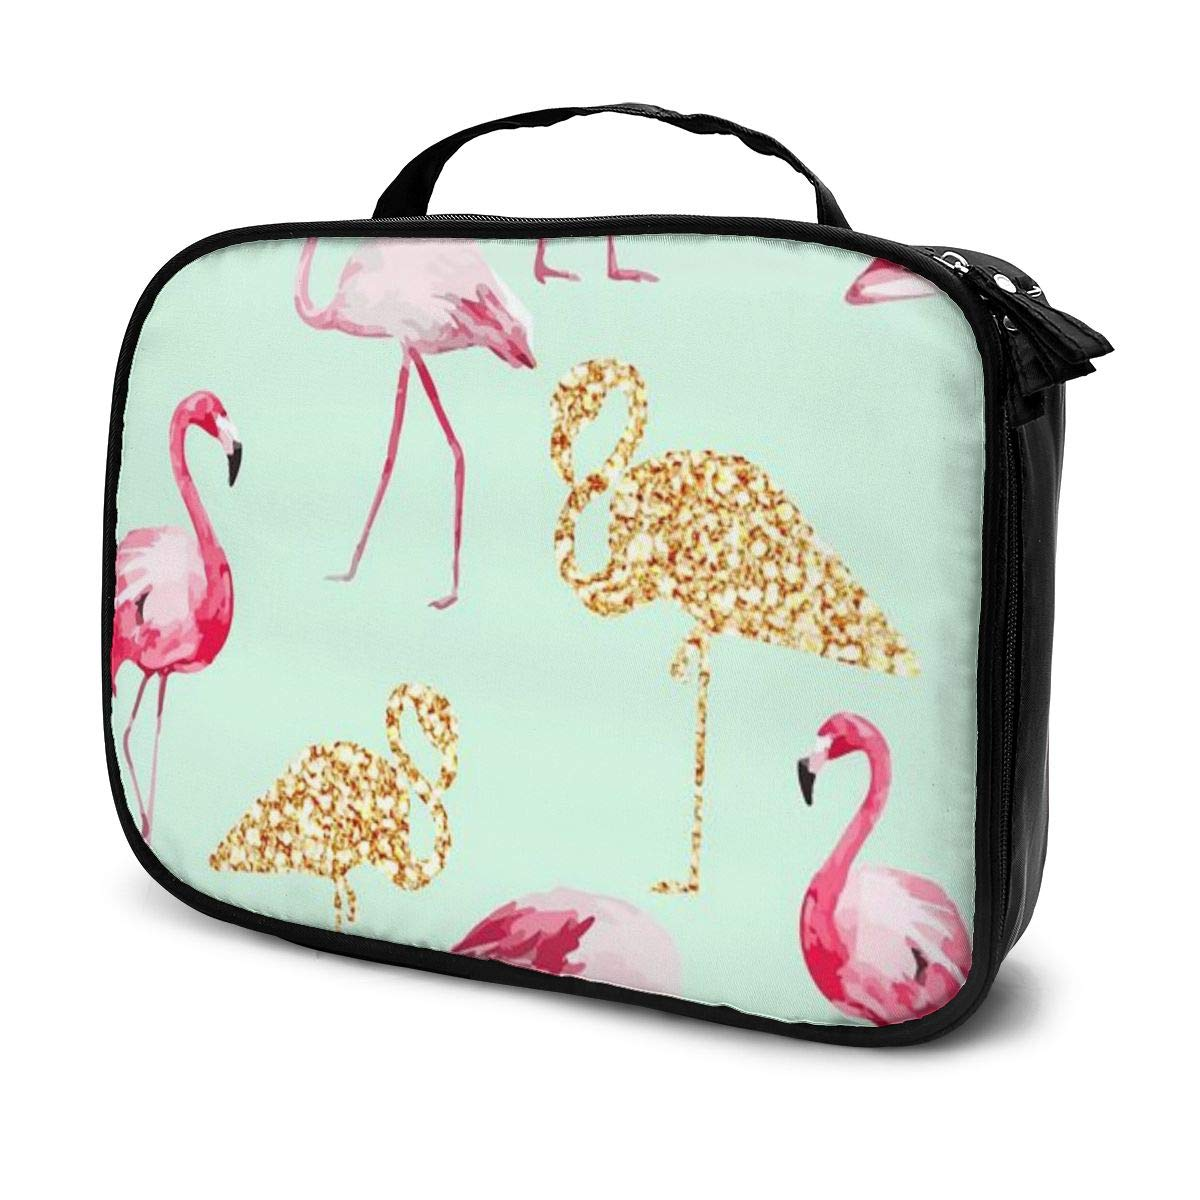 Lazy Toiletry Bag Clutch Bag, Pink Flamingo Gold Flamingo Cosmetic Train Case Organizer Large Capacity Carry On Bag, Luggage Pouch, Makeup Pouch For Women Girls